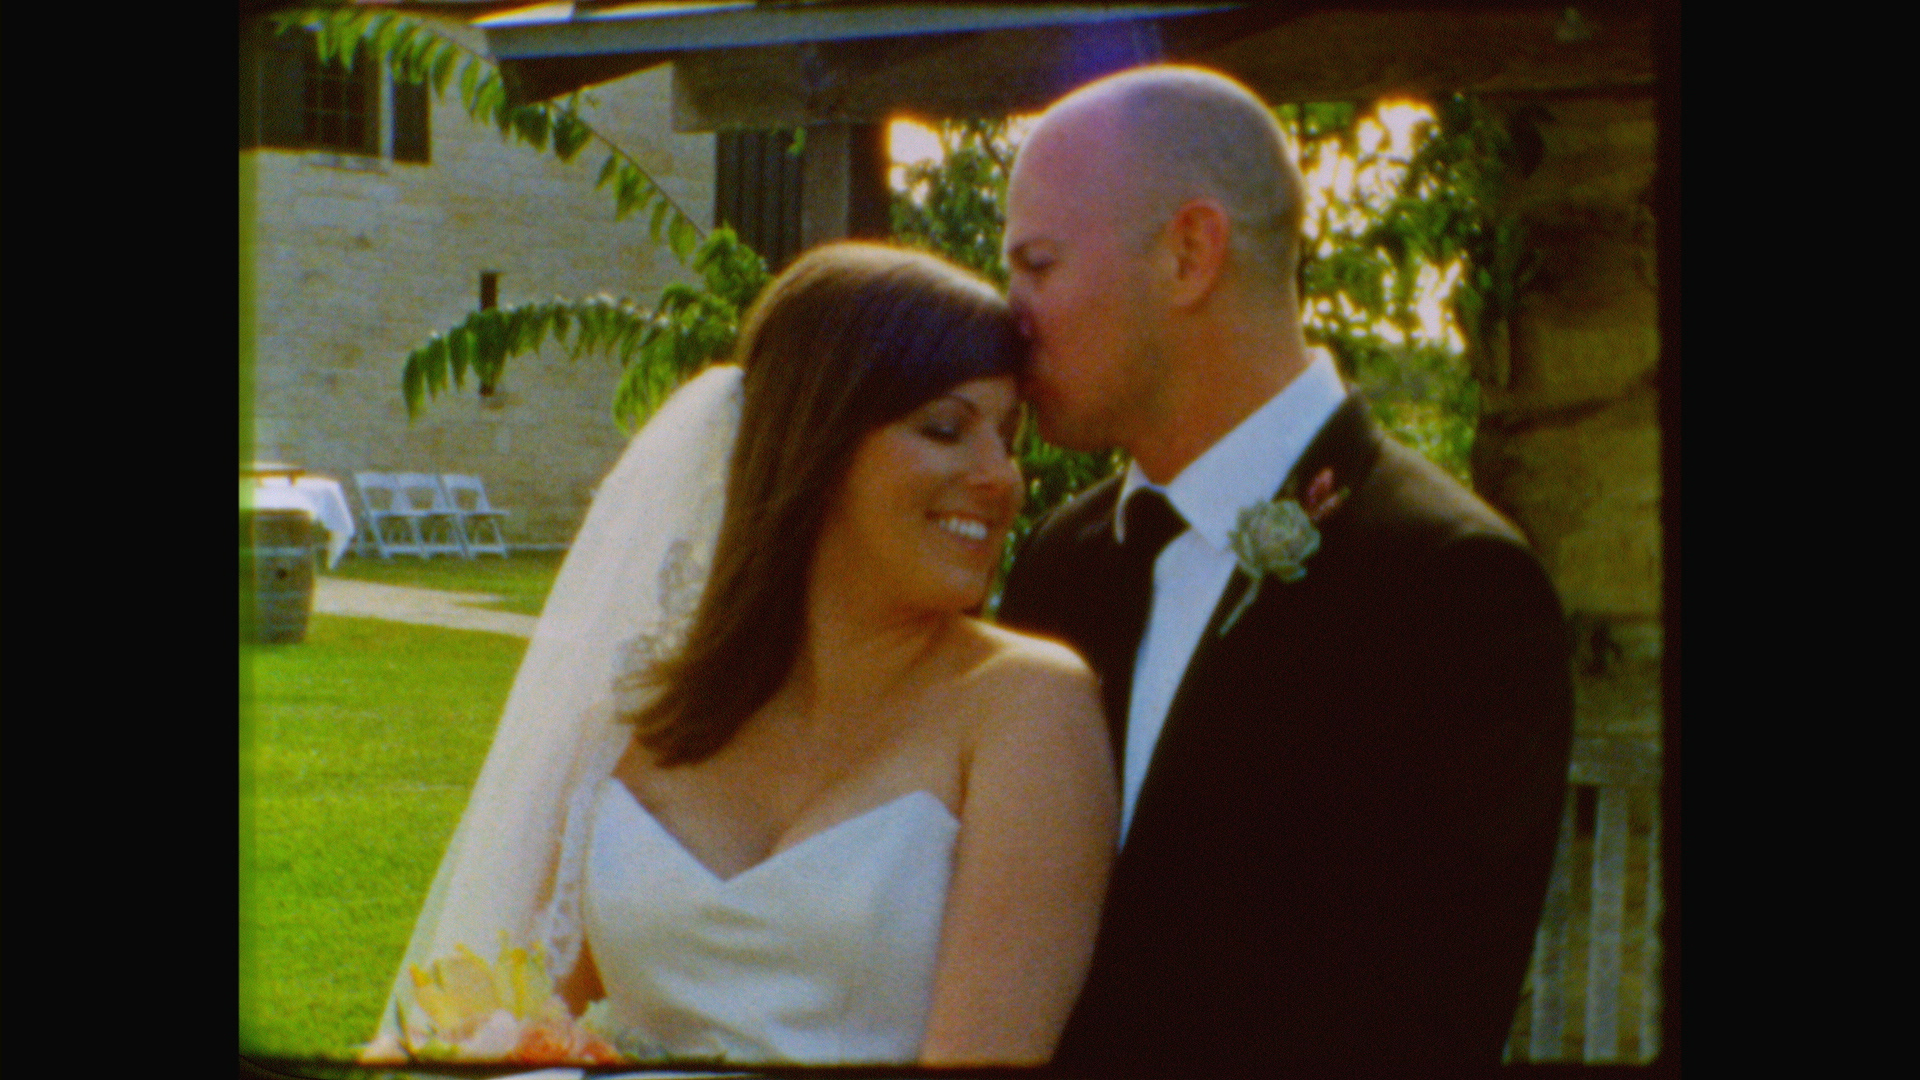 Becker Vineyards Super 8 Wedding Film